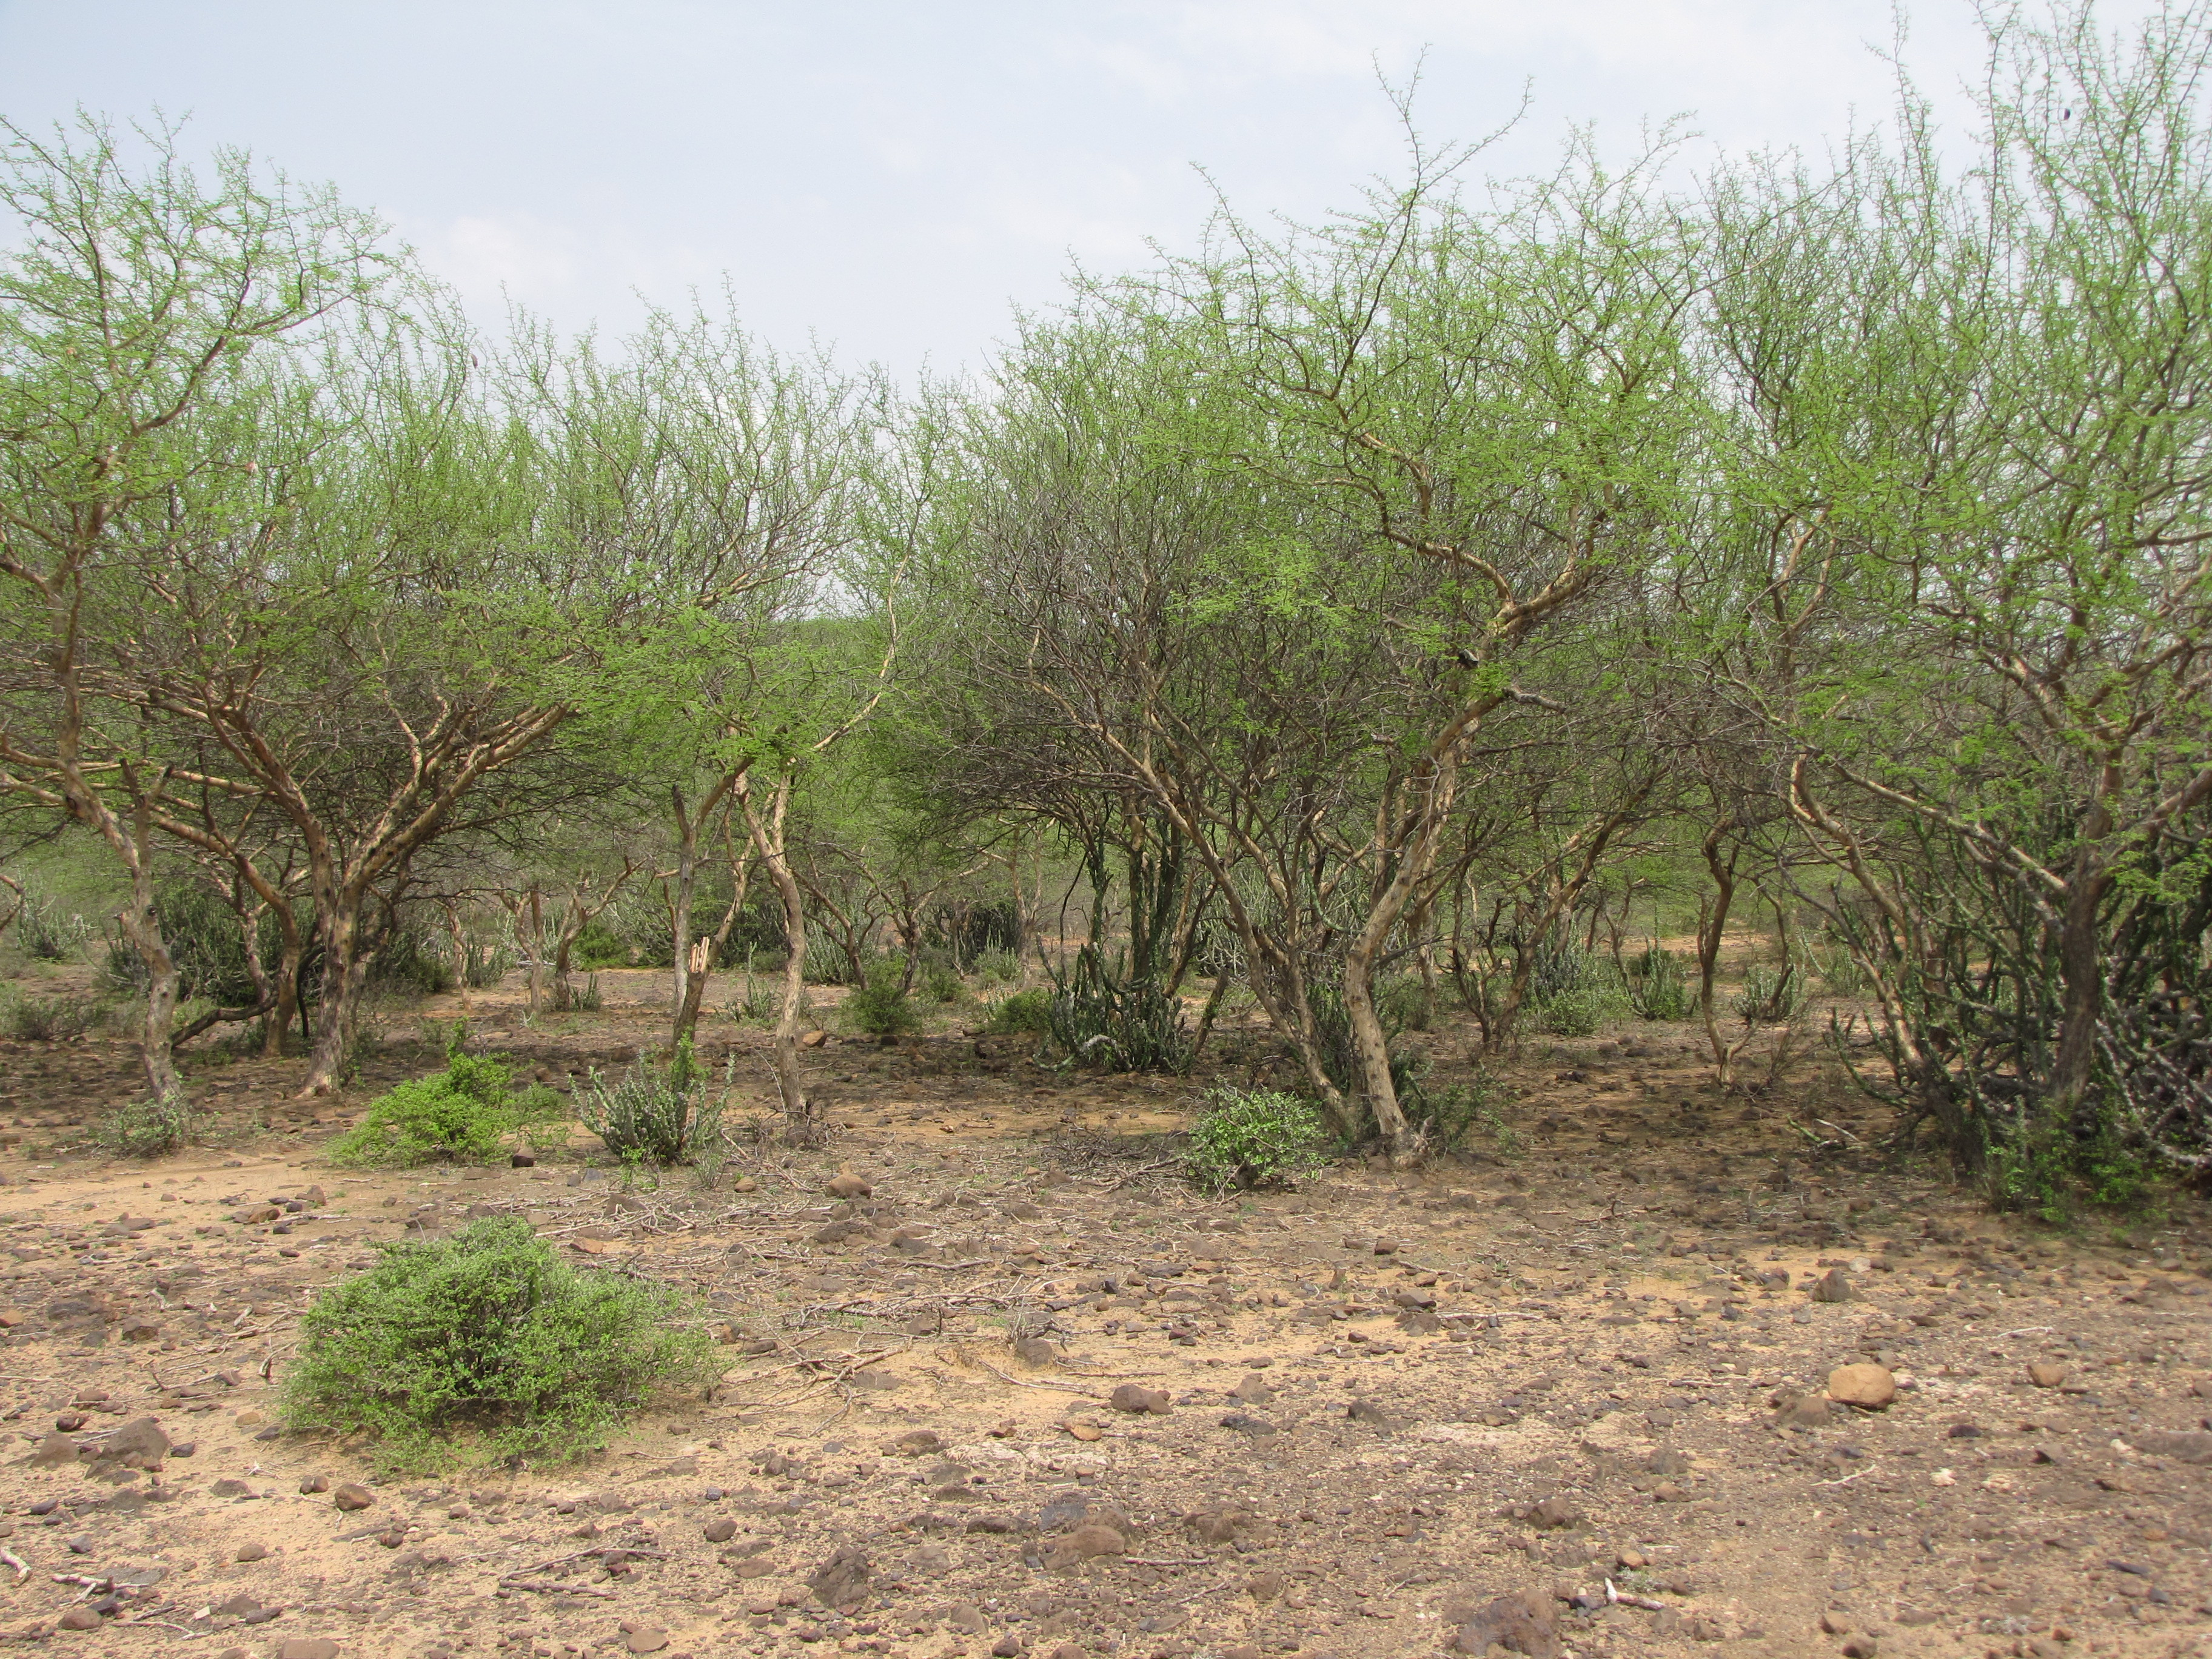 Tropical thorn forests and scrubs animals